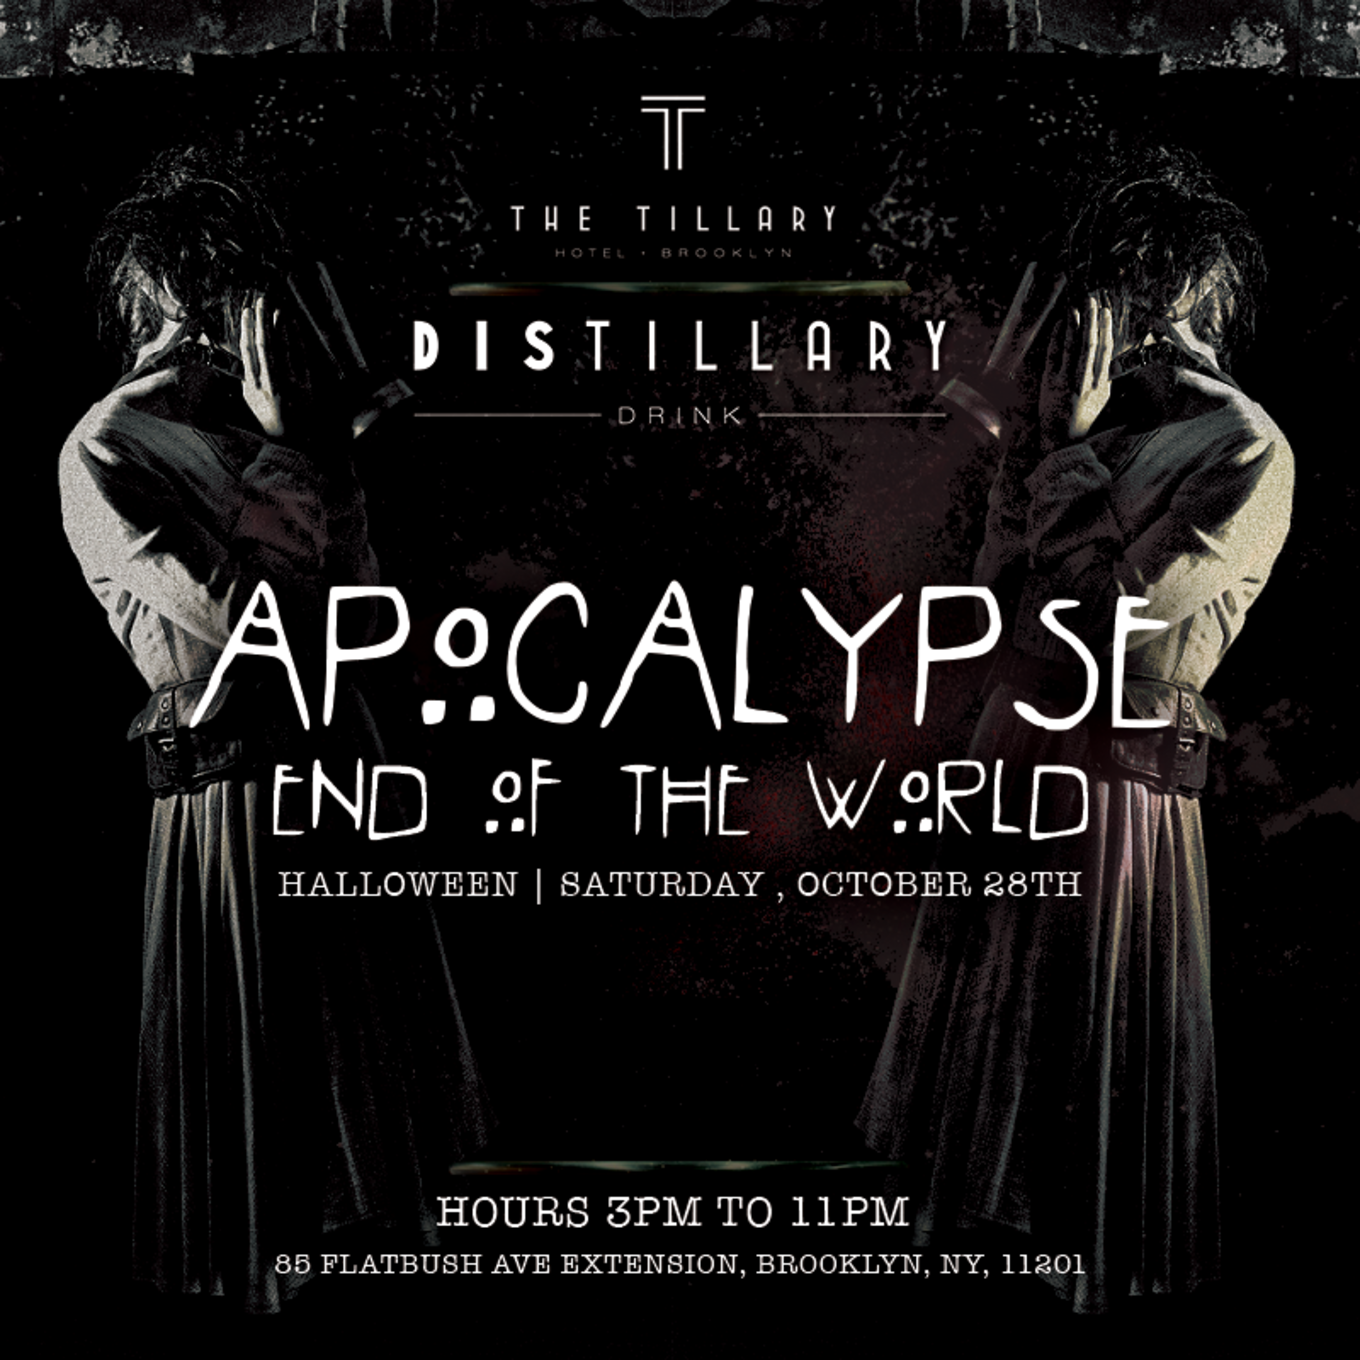 apocalypse end of the world halloween party - Brooklyn Halloween Party